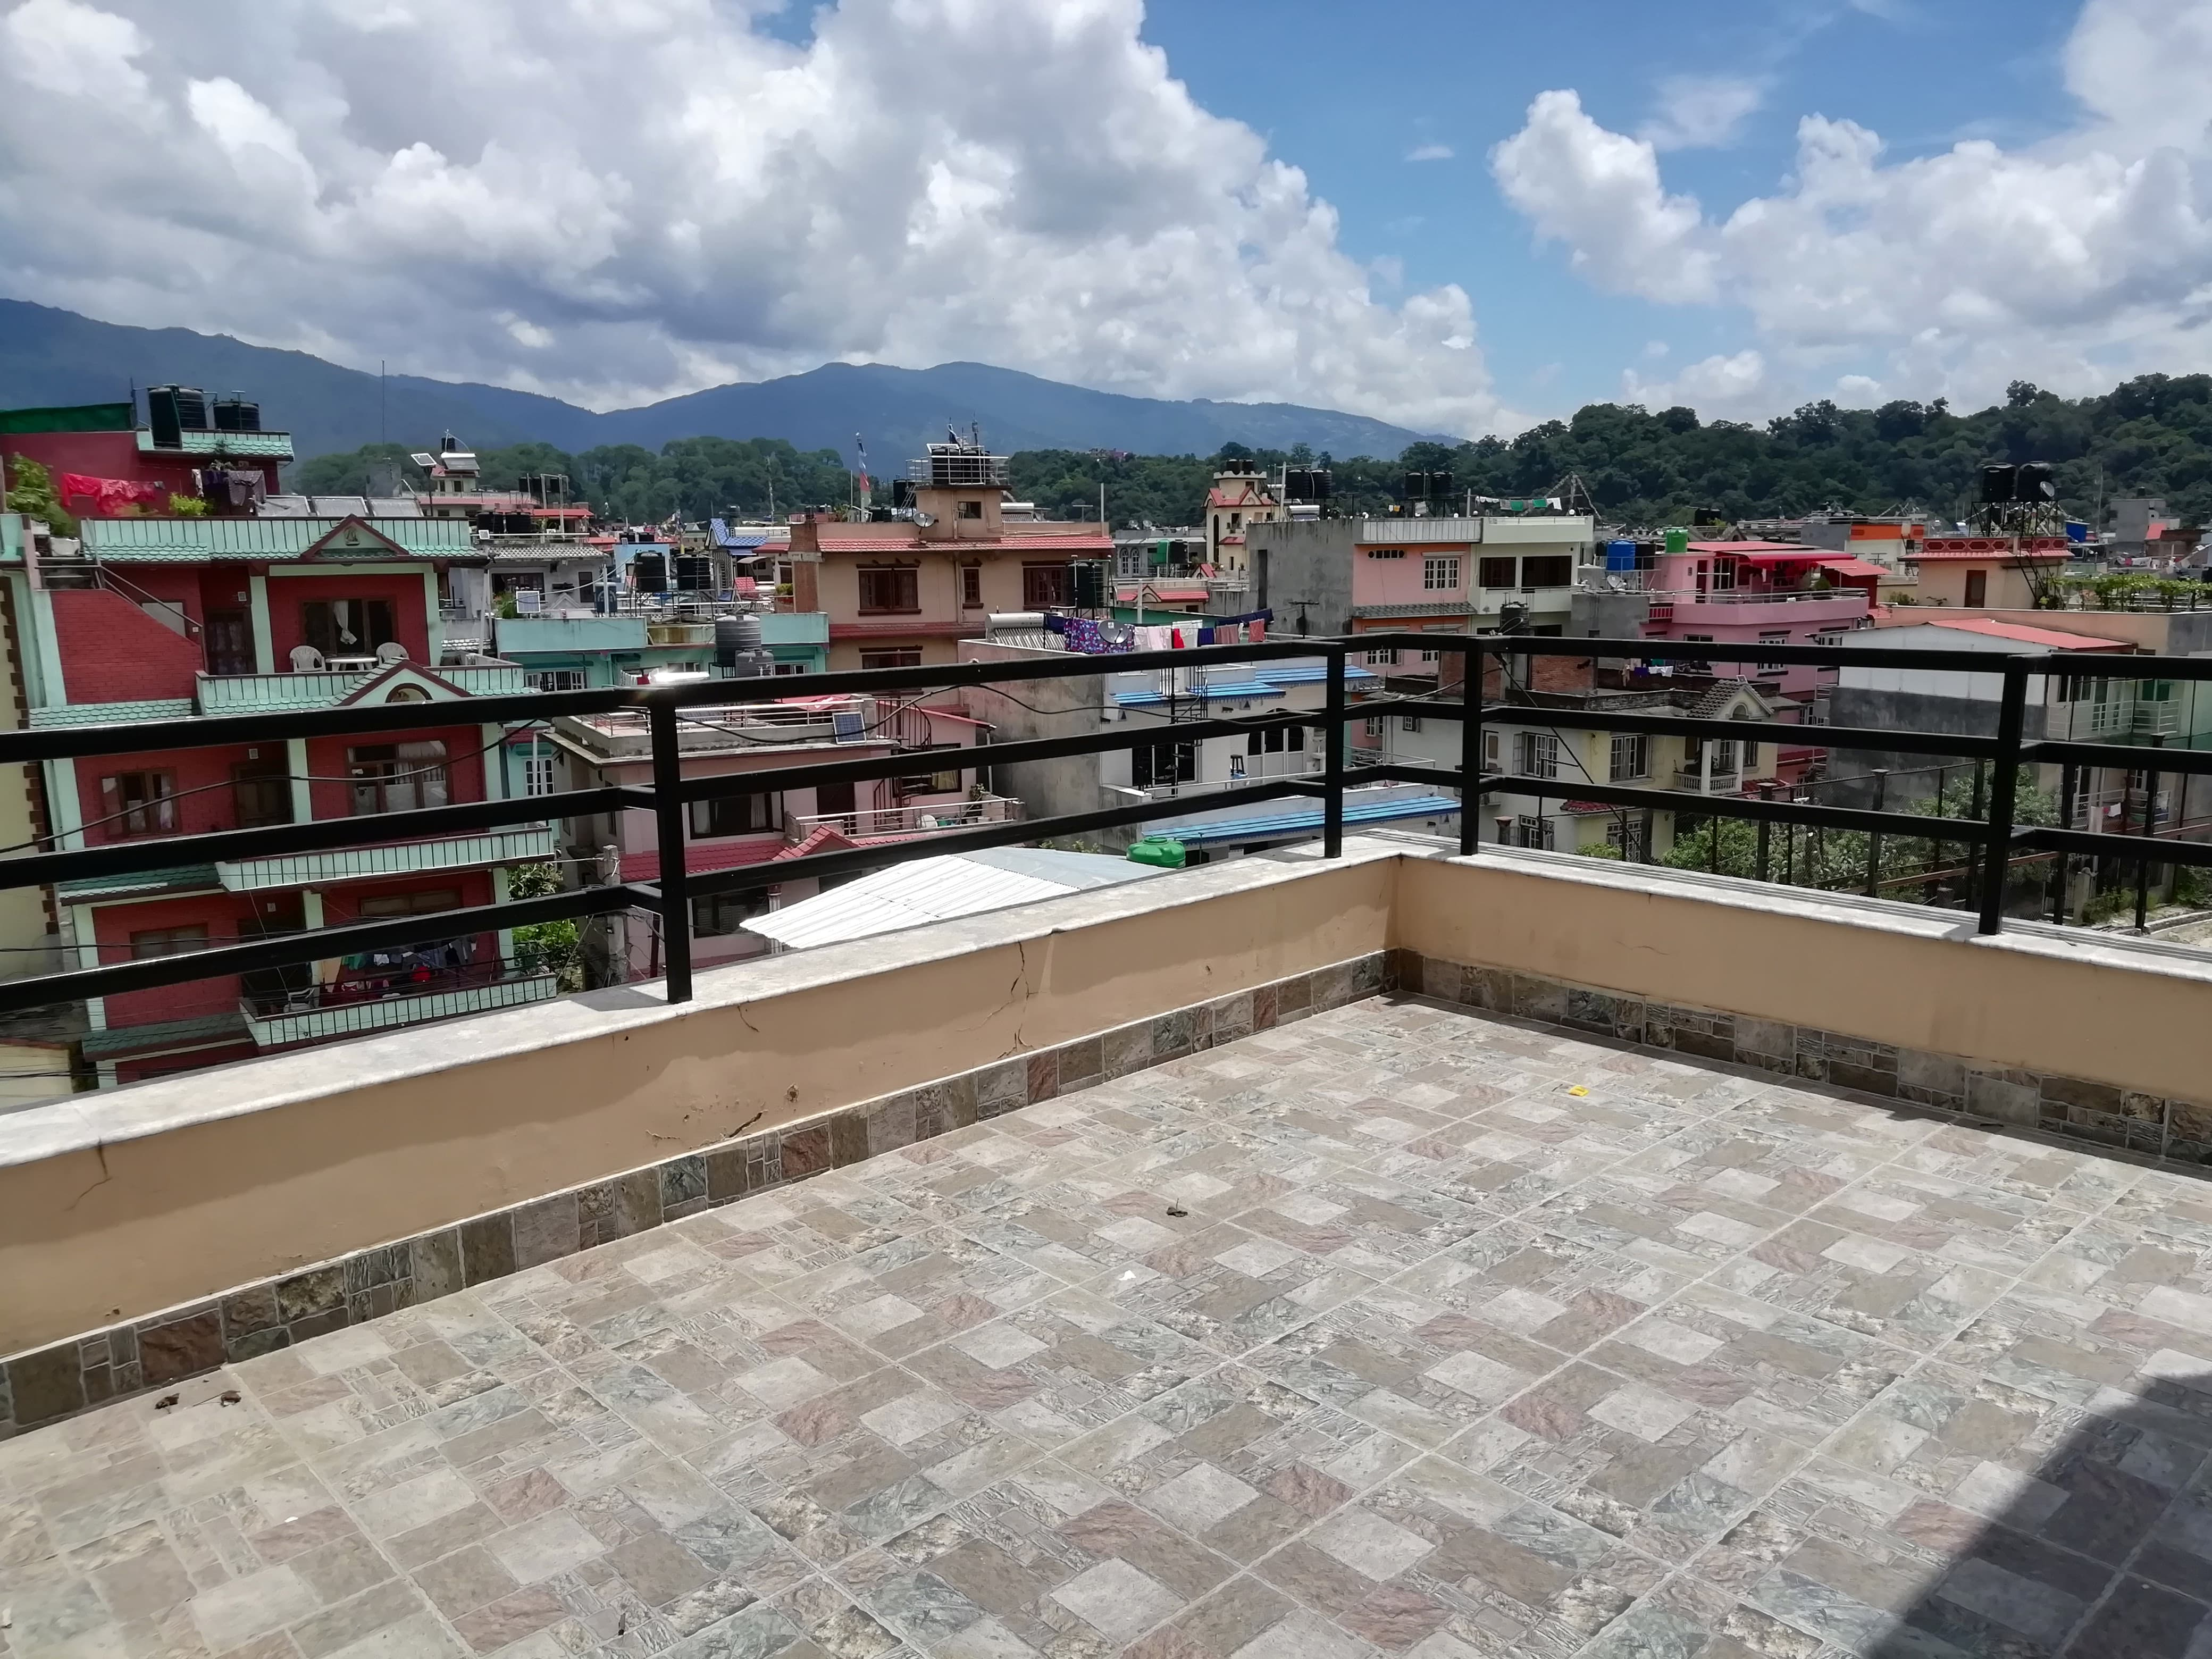 eProperty_Nepal_(1)-min.jpg